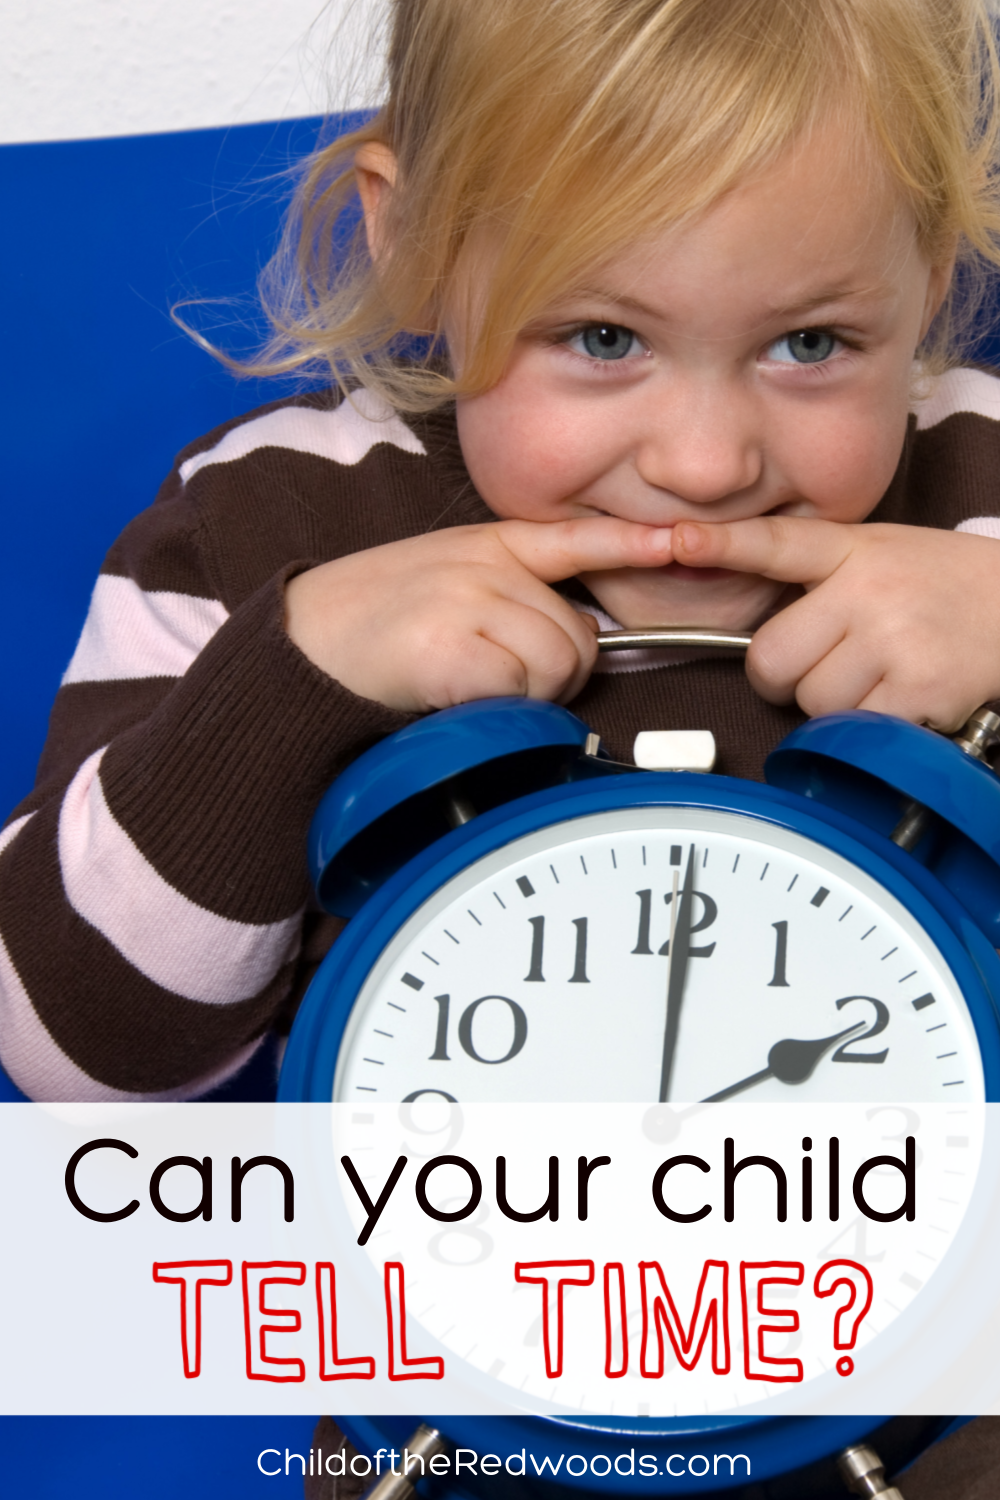 can your child tell time.png